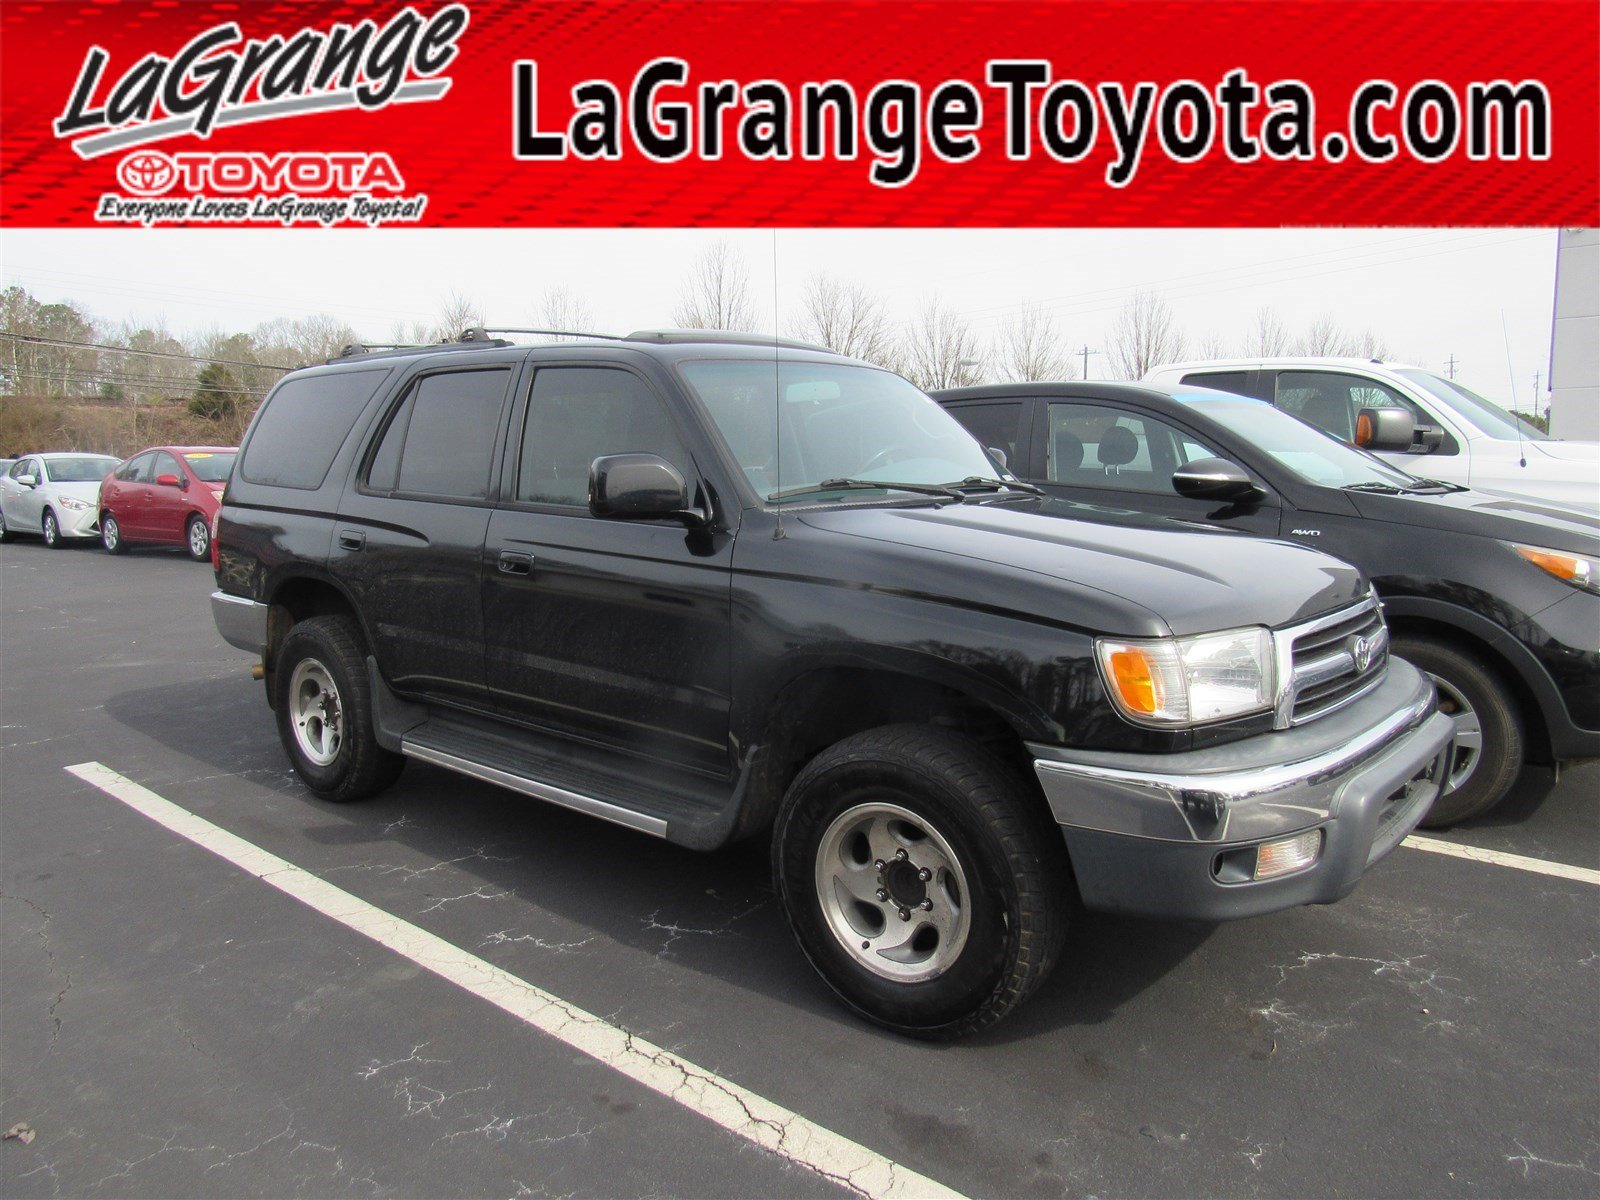 Pre-Owned 2000 Toyota 4Runner 4dr SR5 3.4L Auto